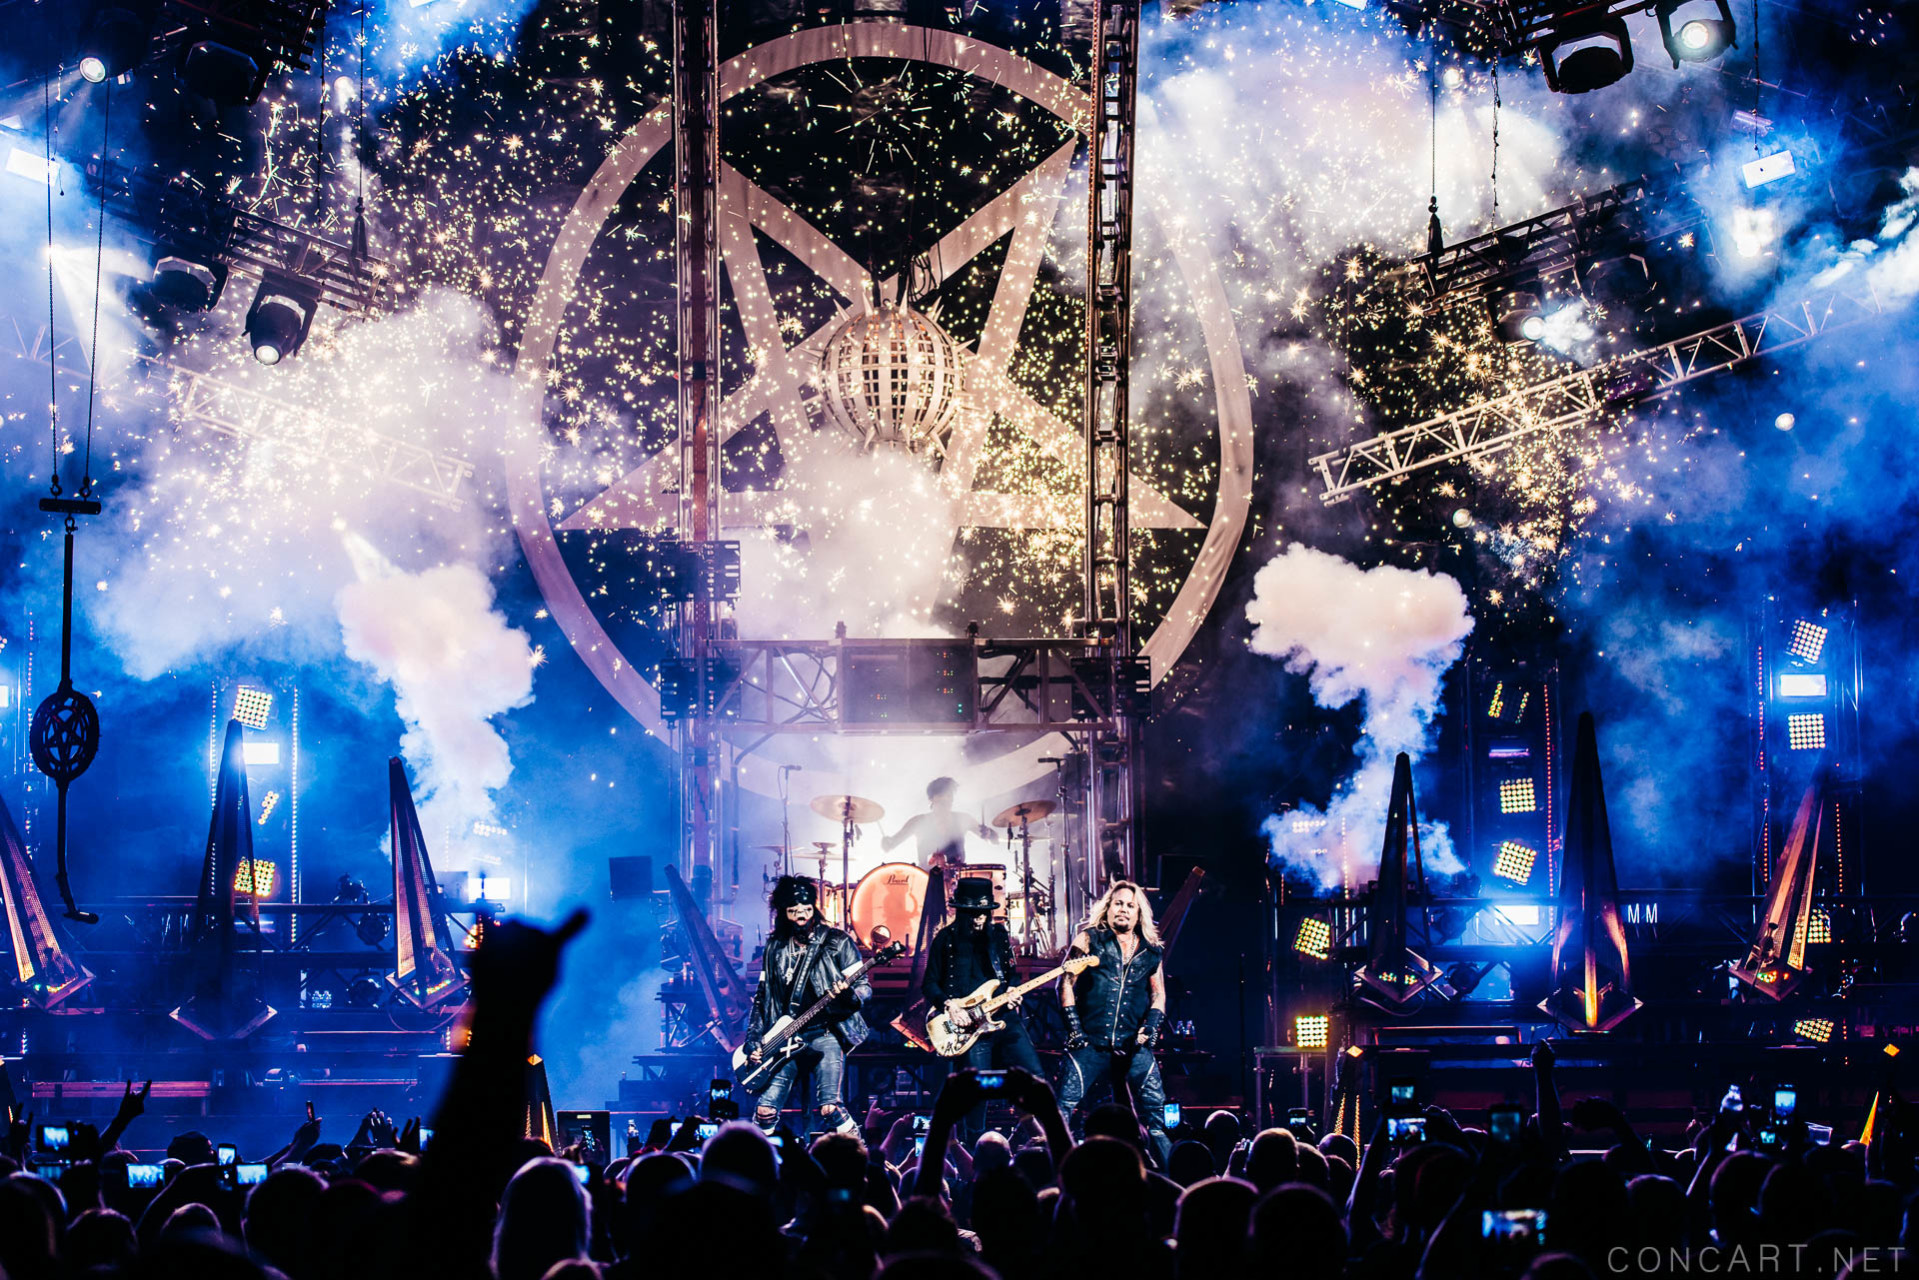 Mötley Crüe photo by Sean Molin 47